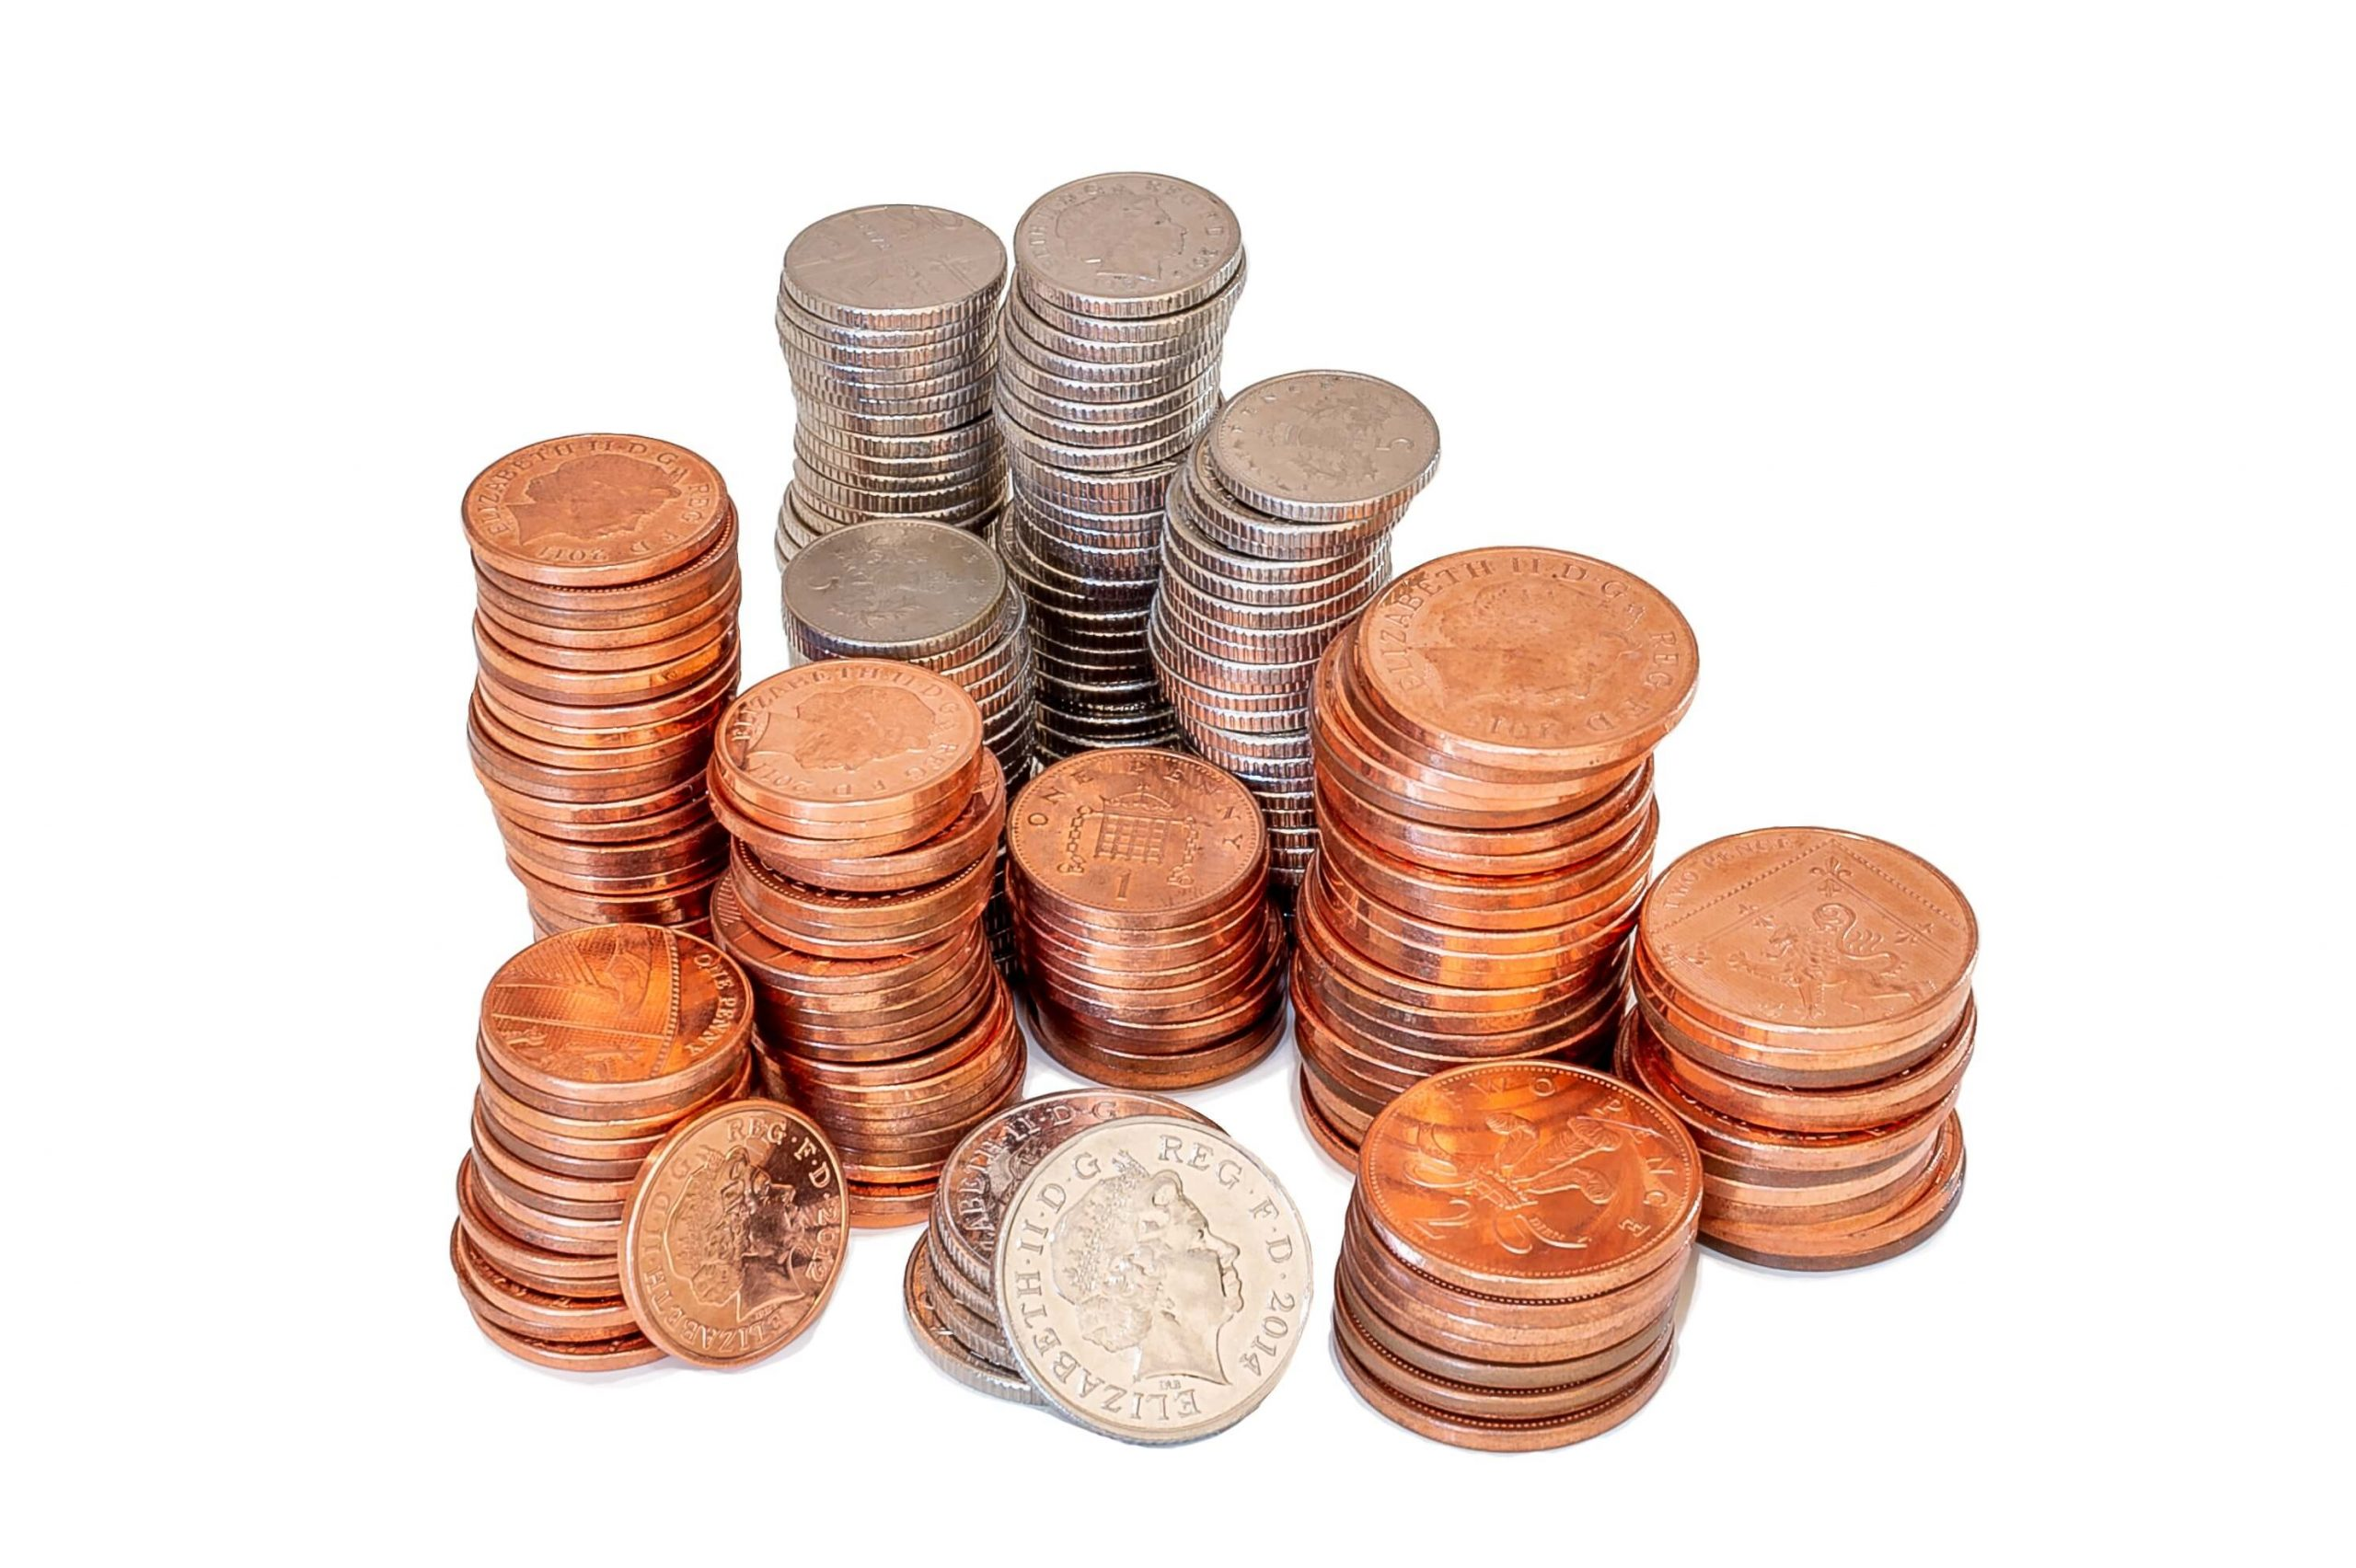 piles of coins on a white background